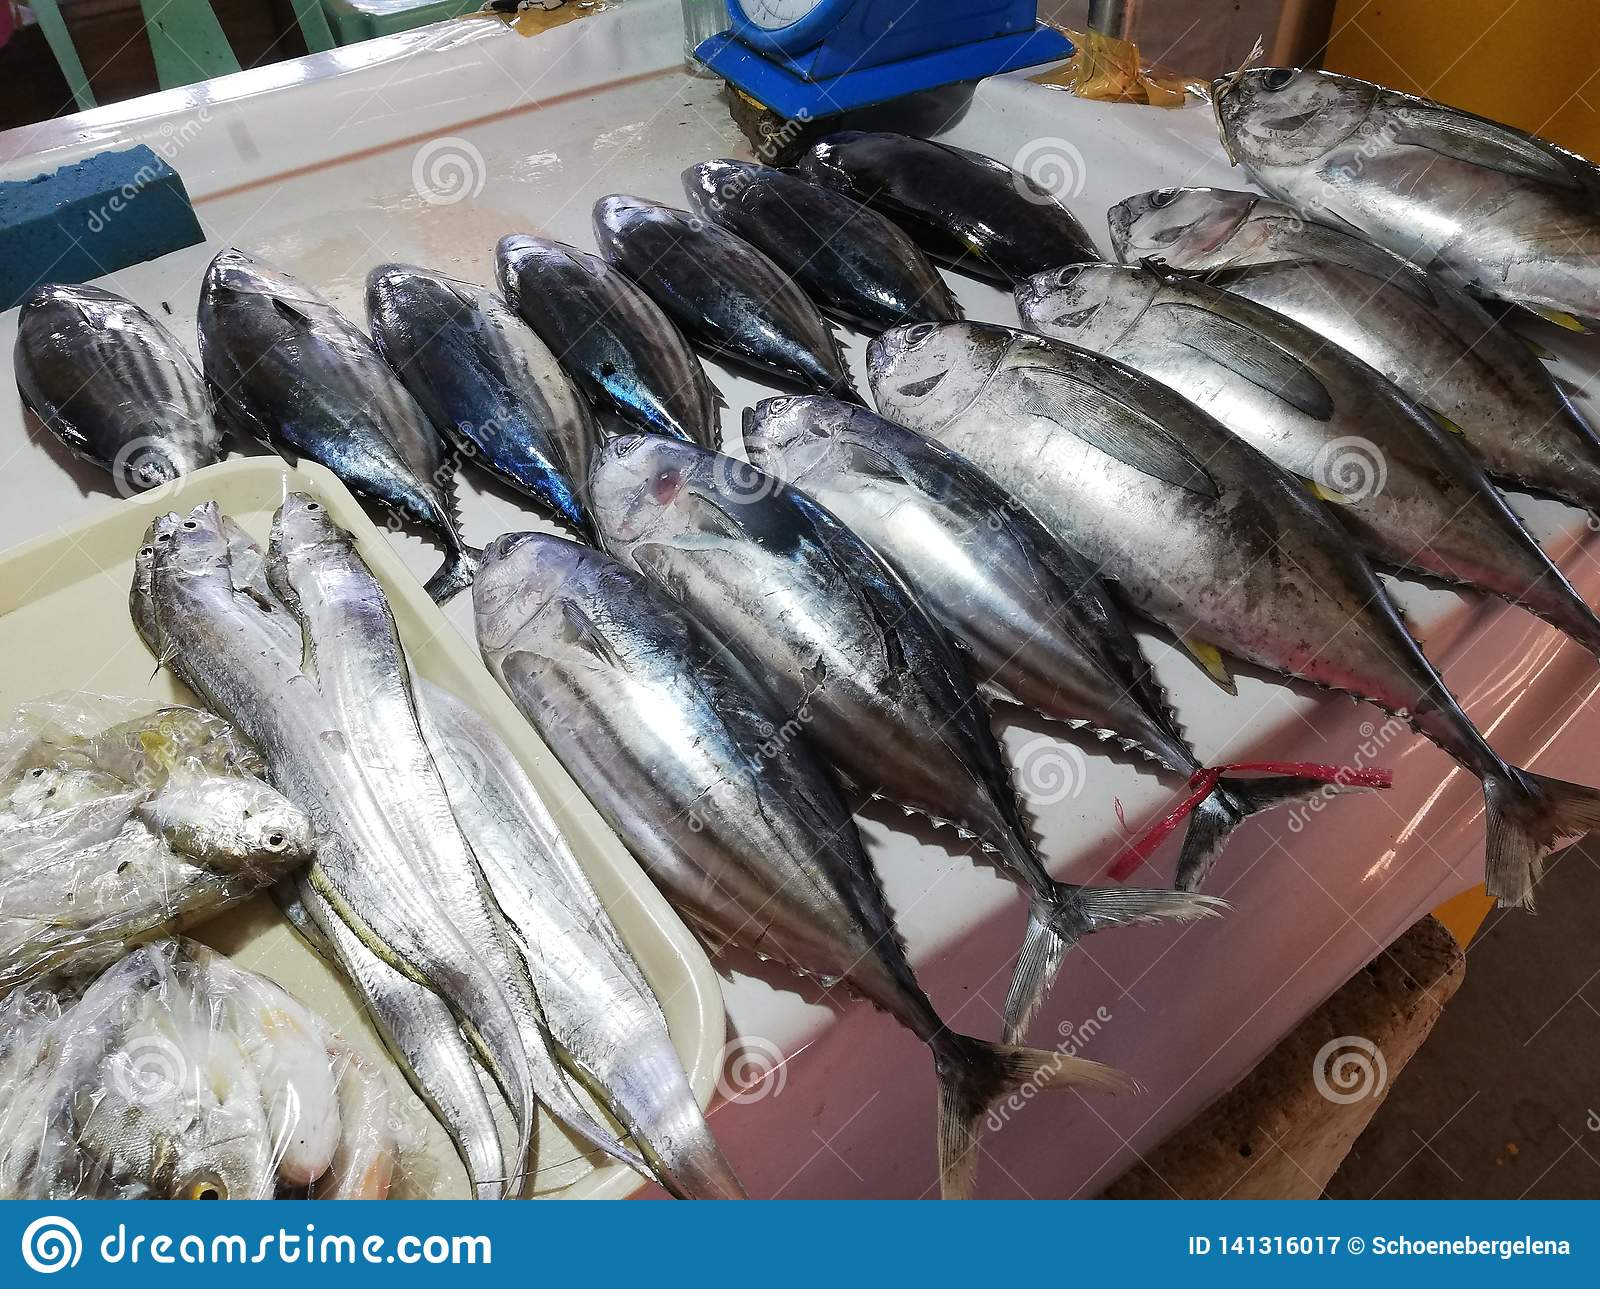 Catch of the day on display in local fish market in Mamburao, Mindoro